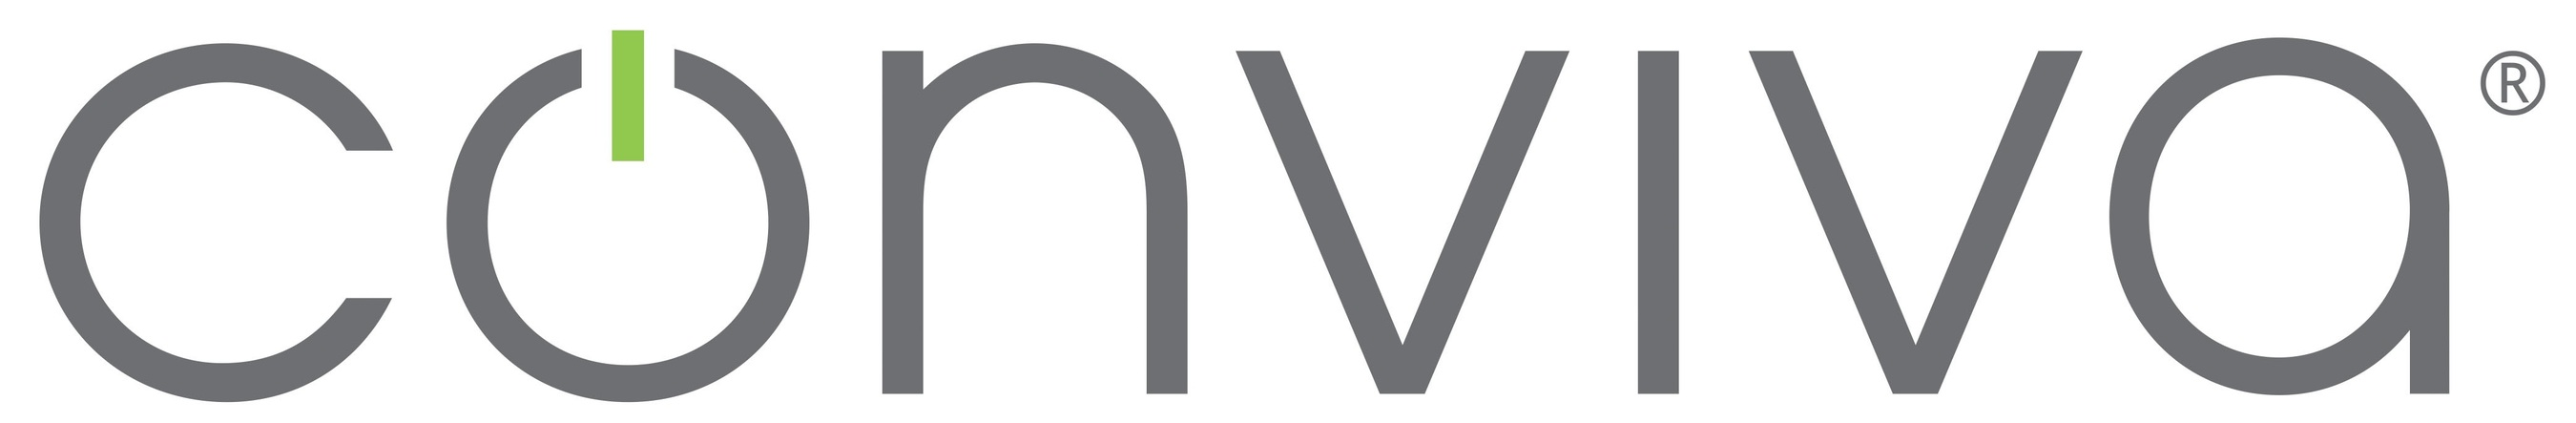 Conviva Announces Addition of Four New Executive Leaders